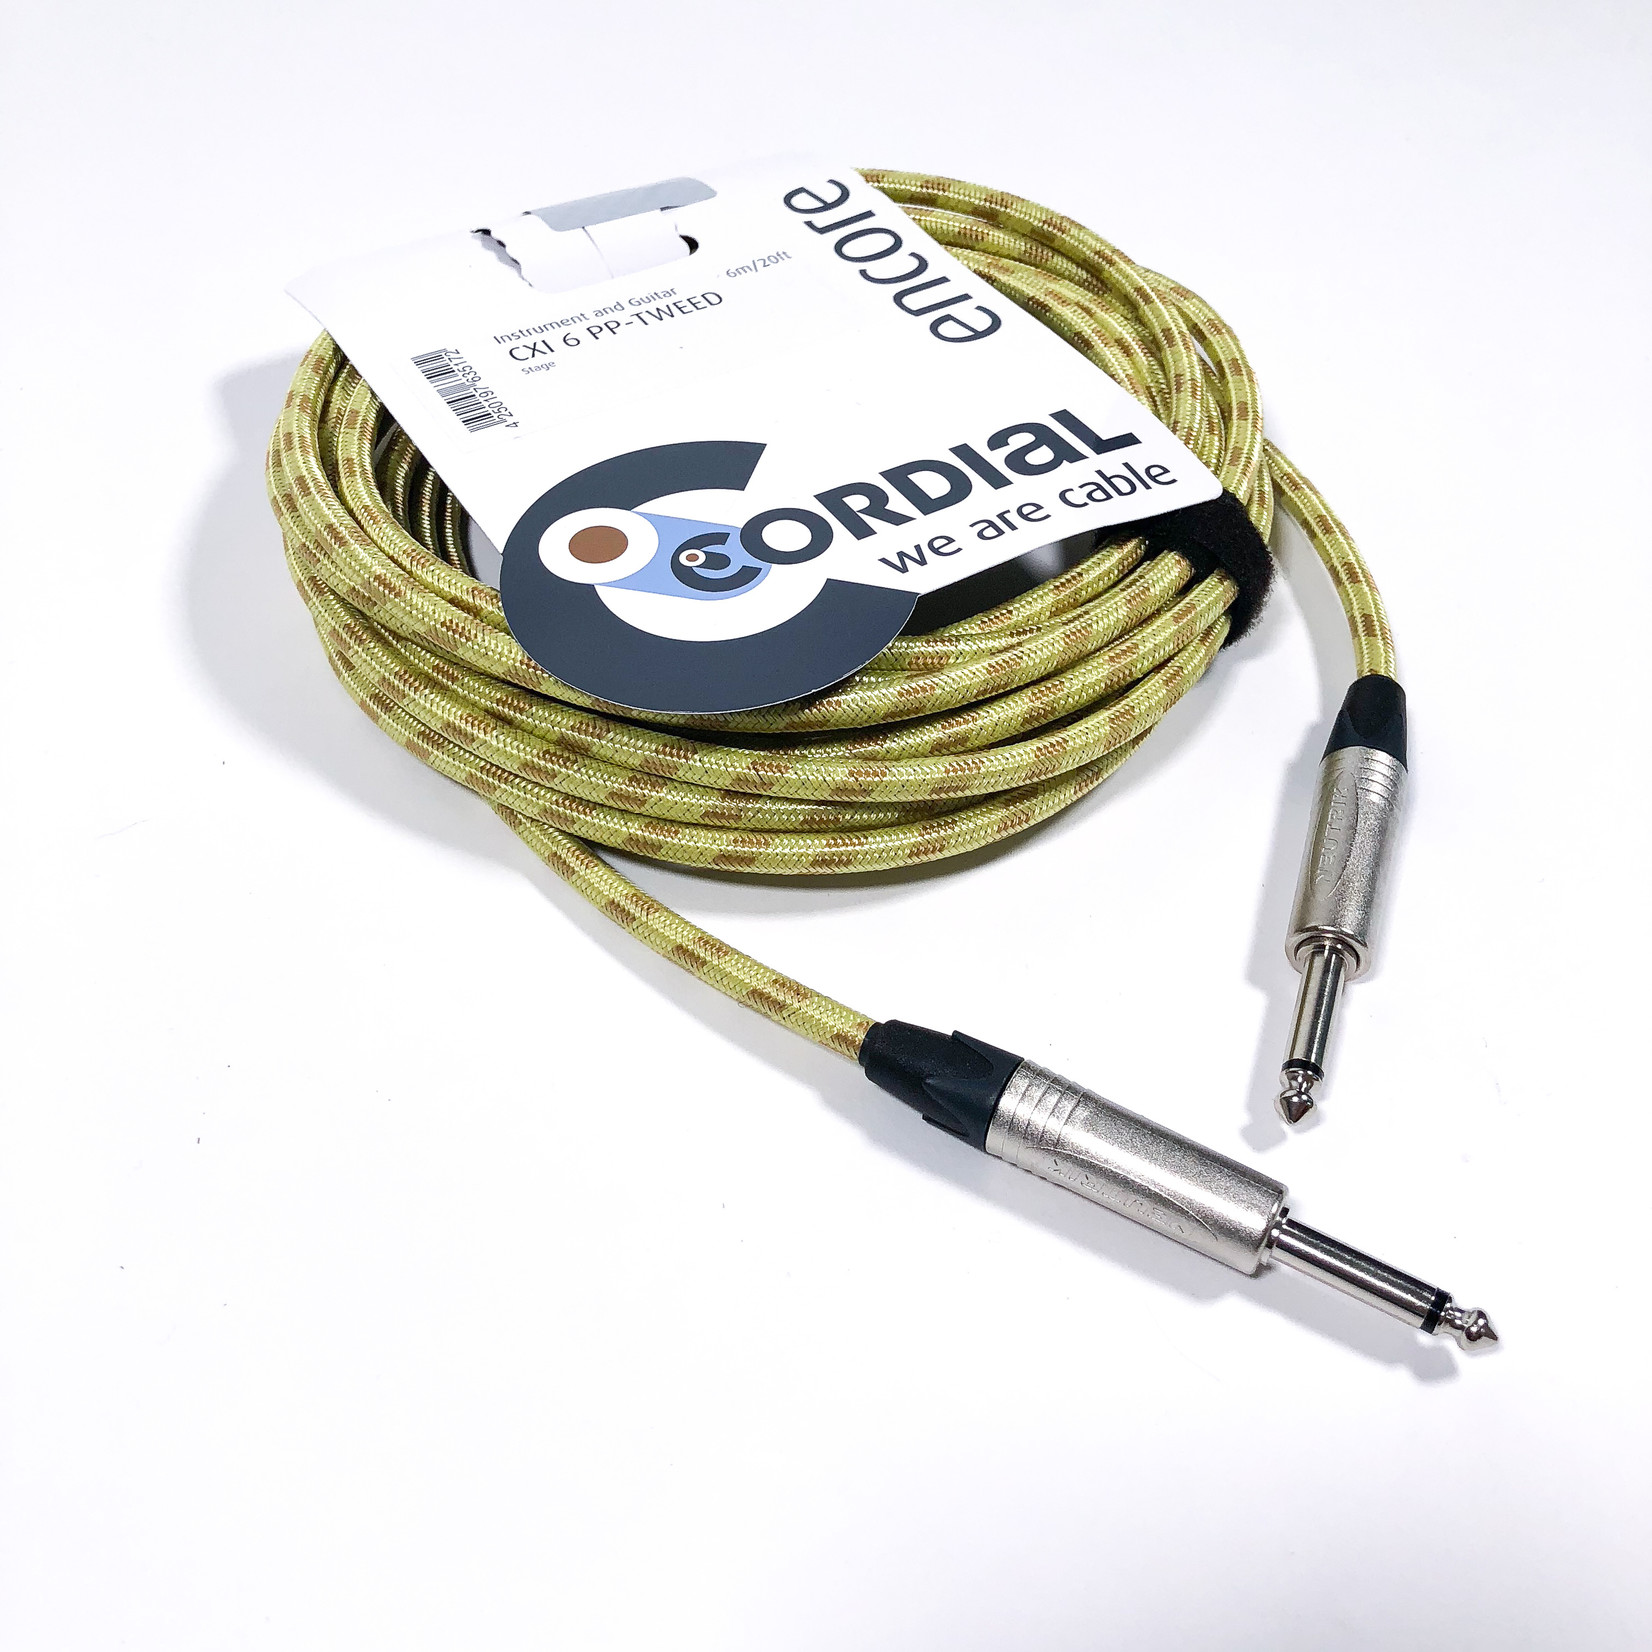 Cordial Cables Cordial 6m /~20ft Instrument Cable for Stage, 1/4'' Neutrik NP2X Connectors, CXI 6 PP-TWEED (Germany)